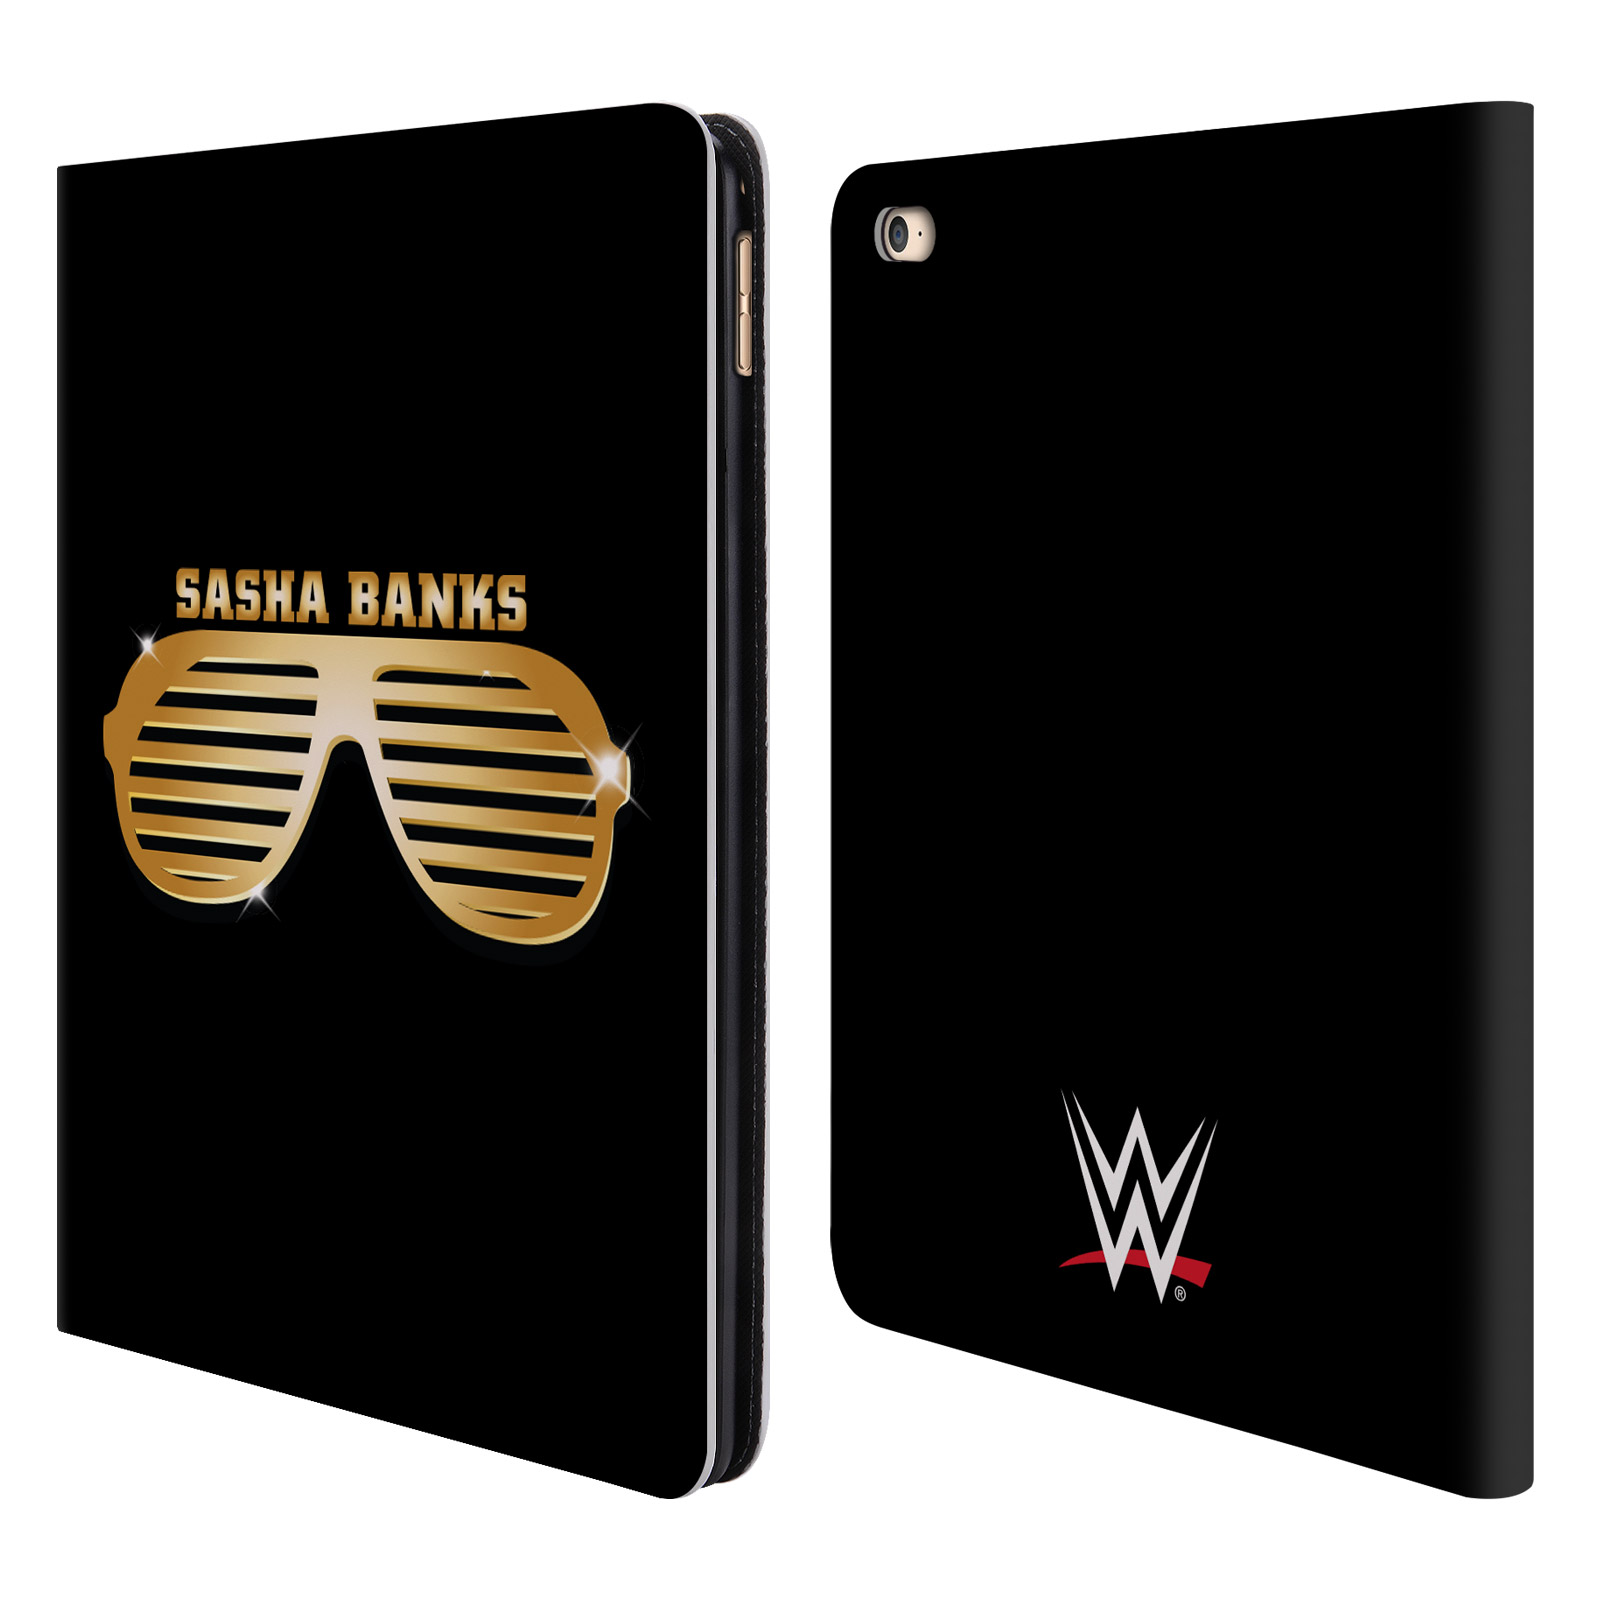 OFFICIAL WWE SASHA BANKS LEATHER BOOK WALLET CASE COVER FOR APPLE IPAD